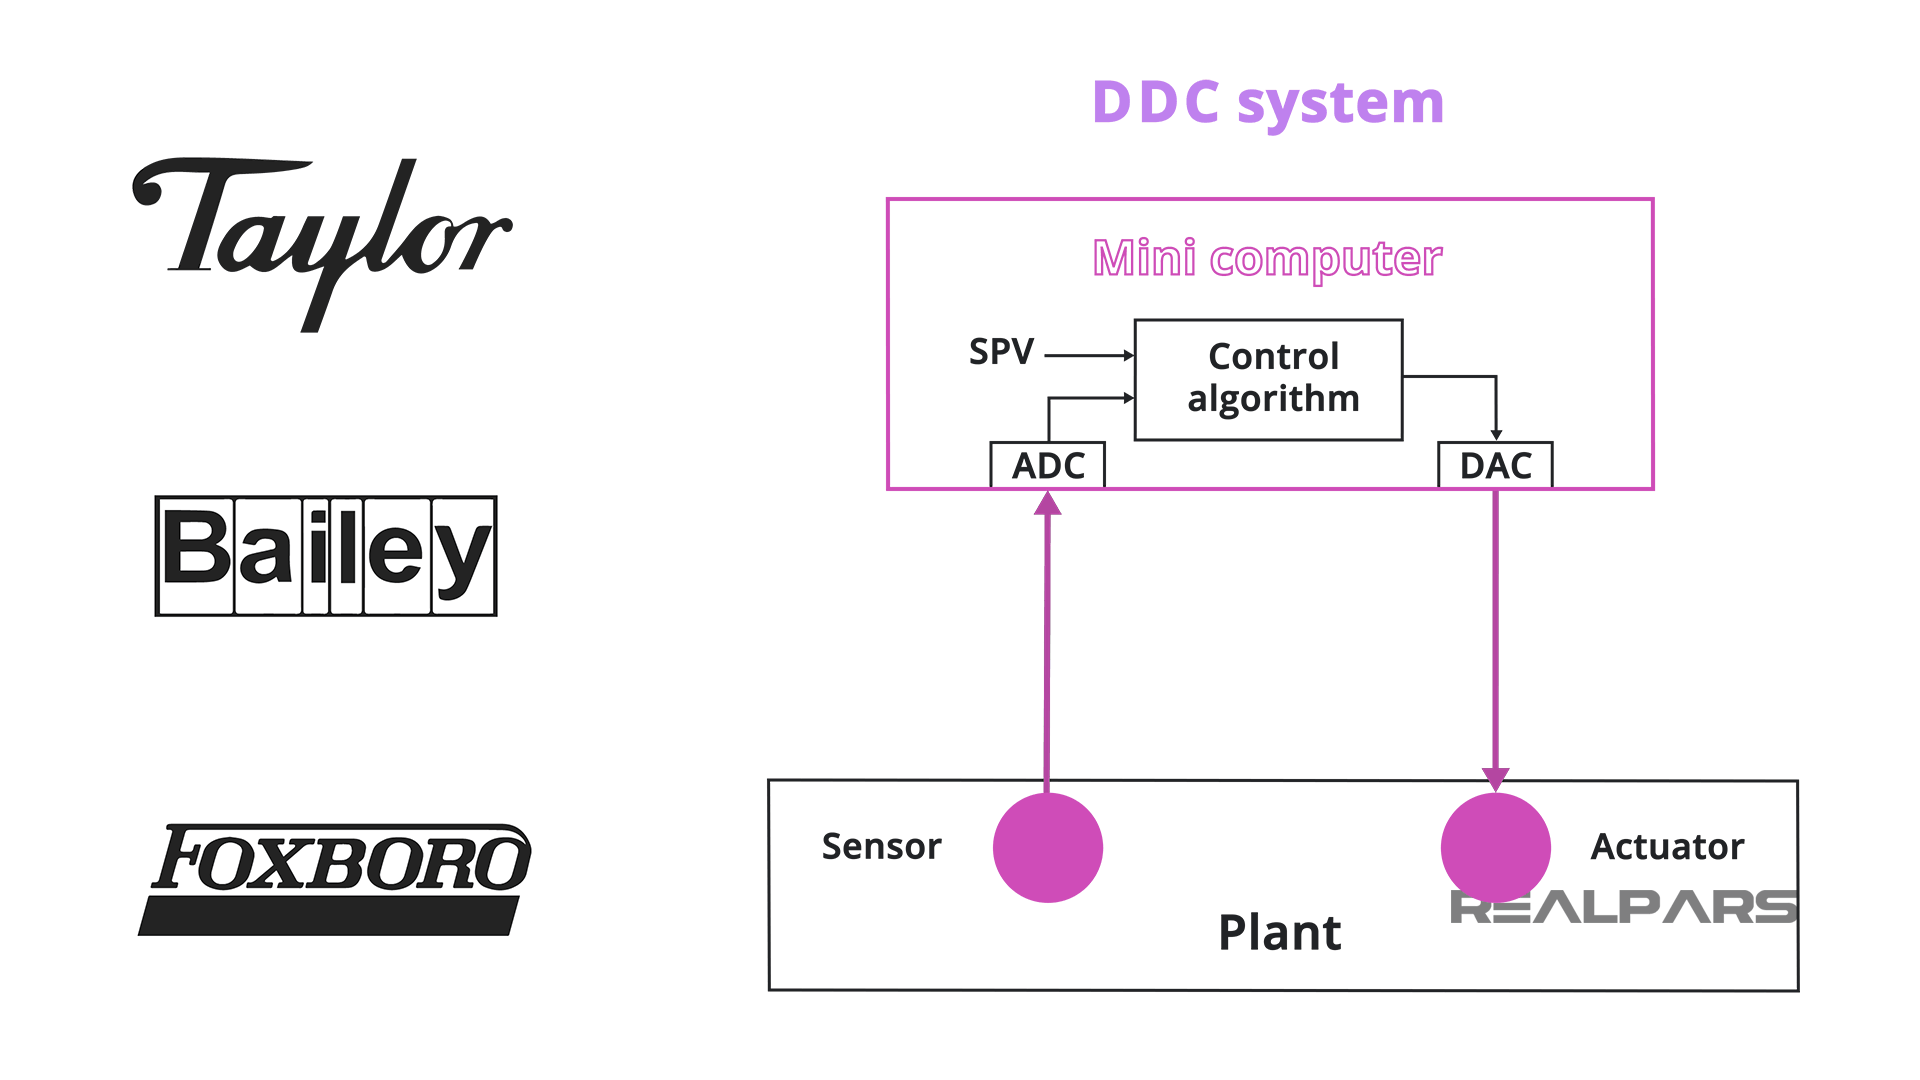 Direct Digital Control or DDC System